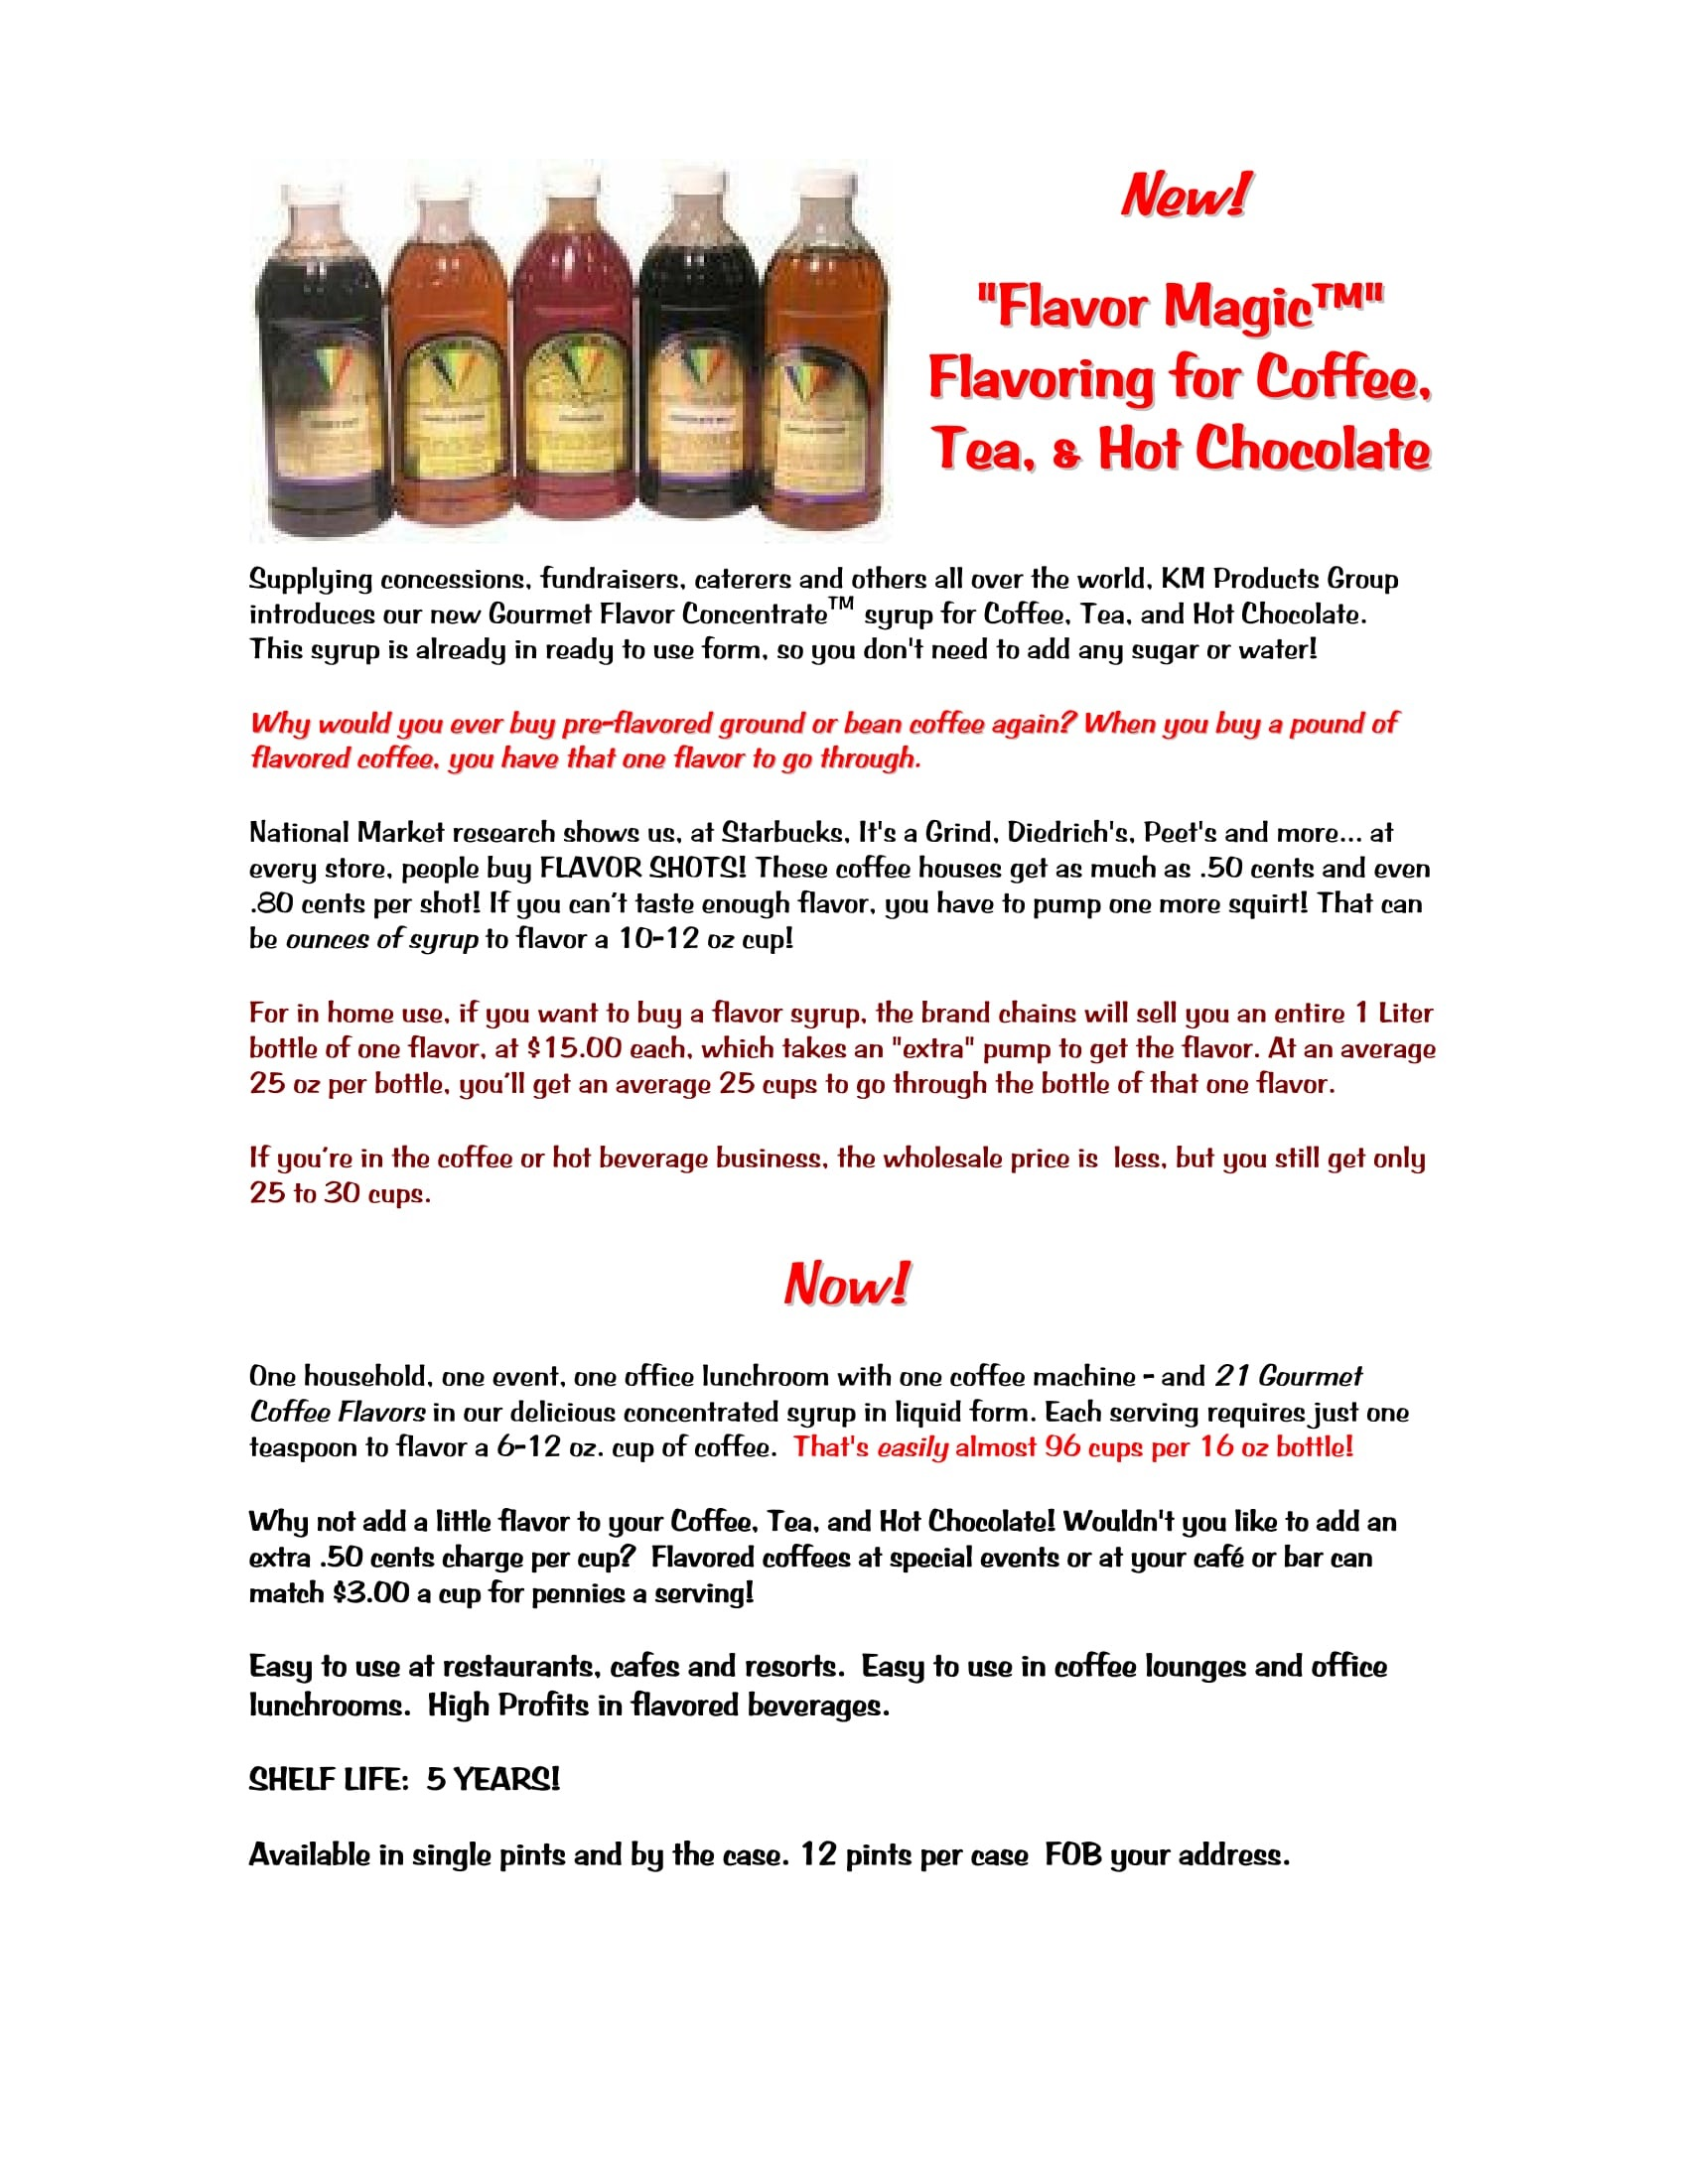 Coffee Flavor Magic Concentrate